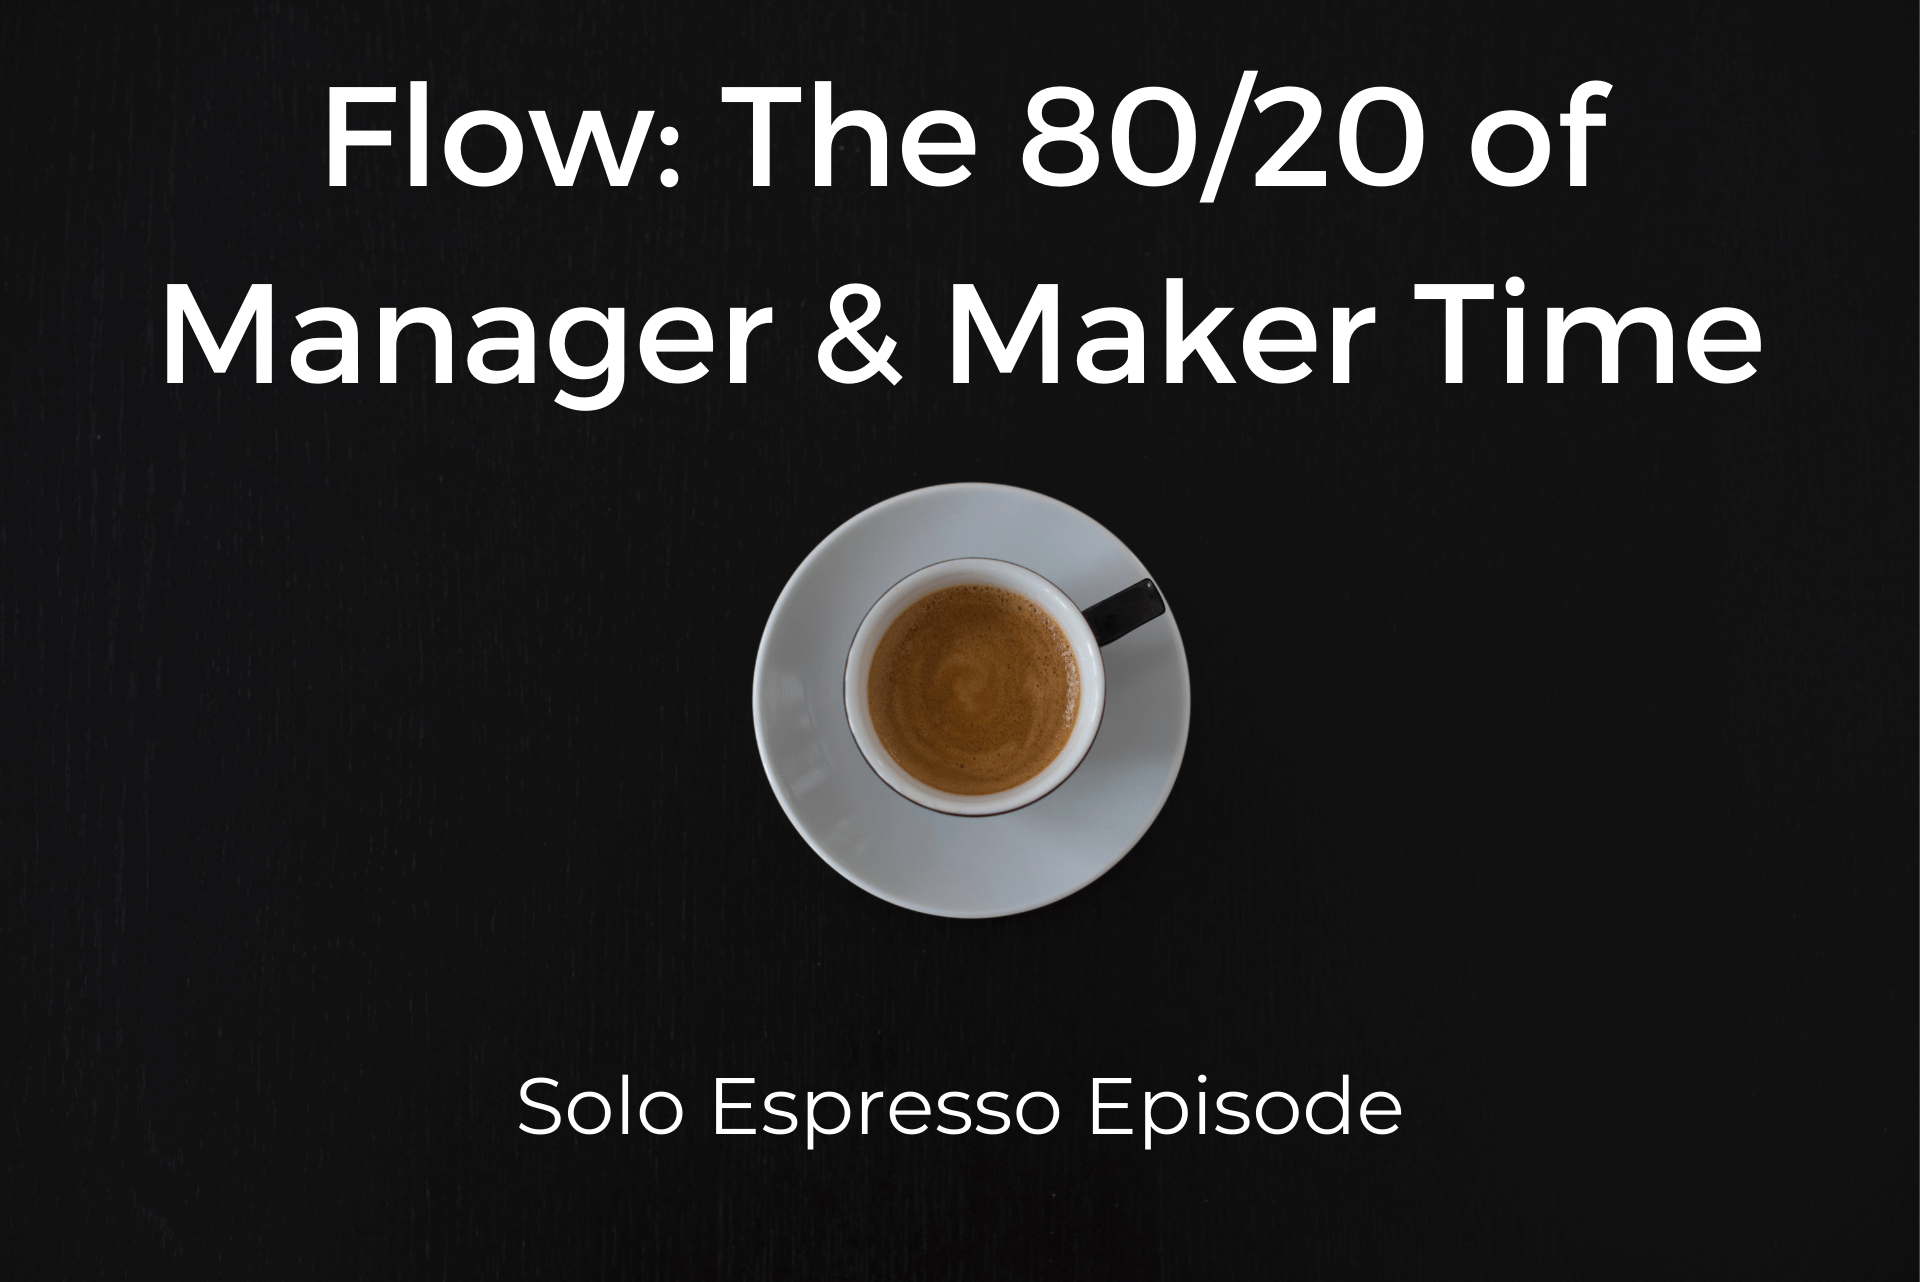 Flow: The 80/20 of Manager & Maker Time (Dealing with Goliath Podcast #022)